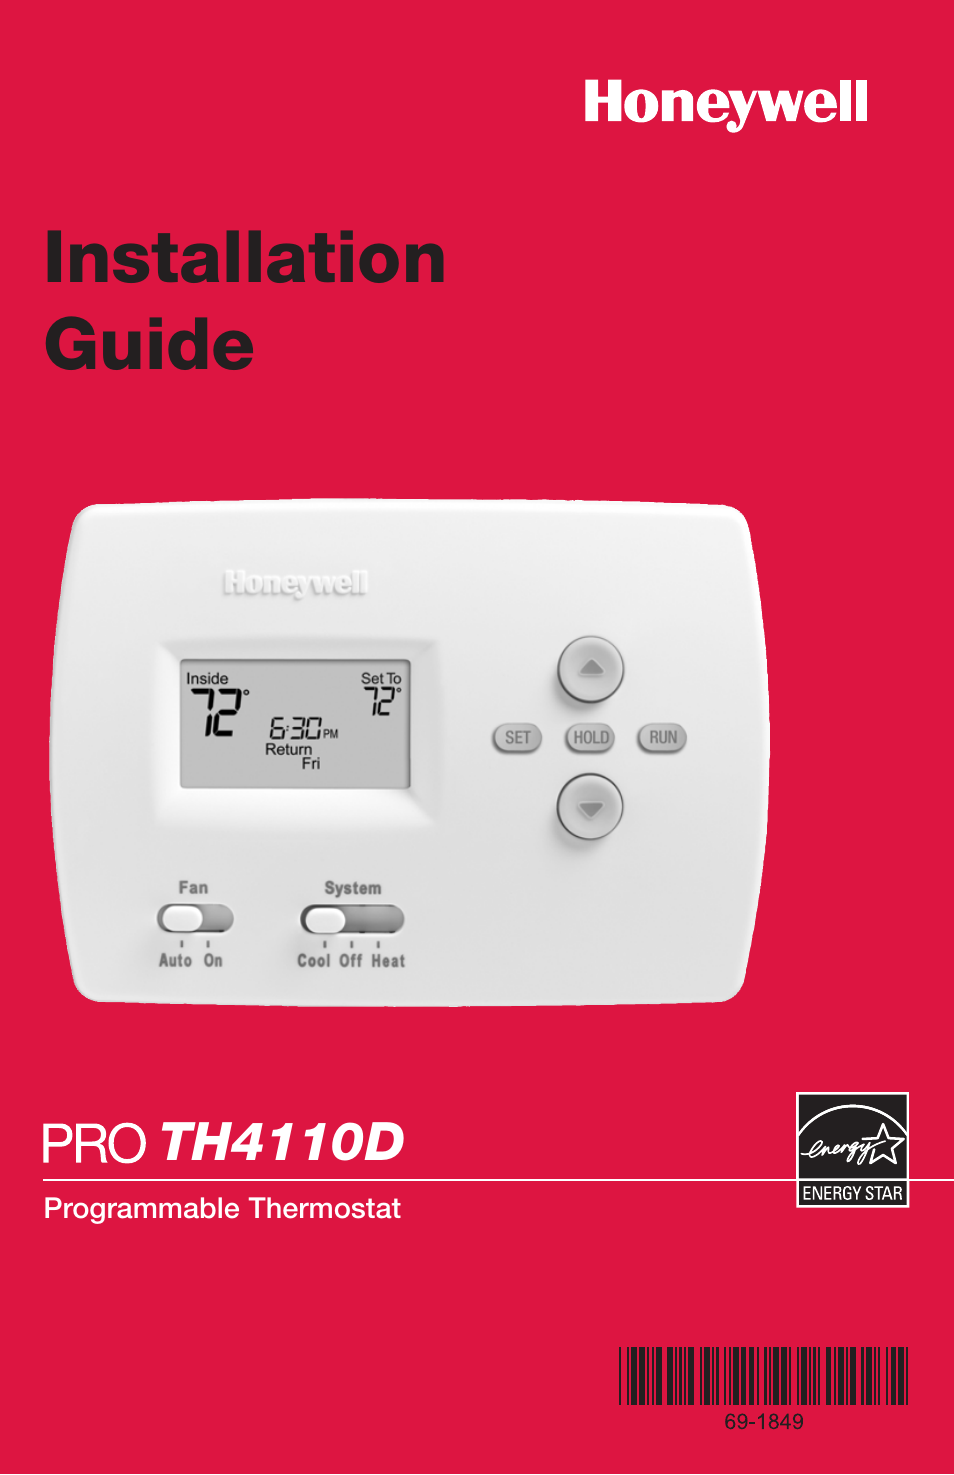 Honeywell thermostat installation guide thermostat manual wiring diagram for honeywell thermostat rth2300b asfbconference2016 Choice Image